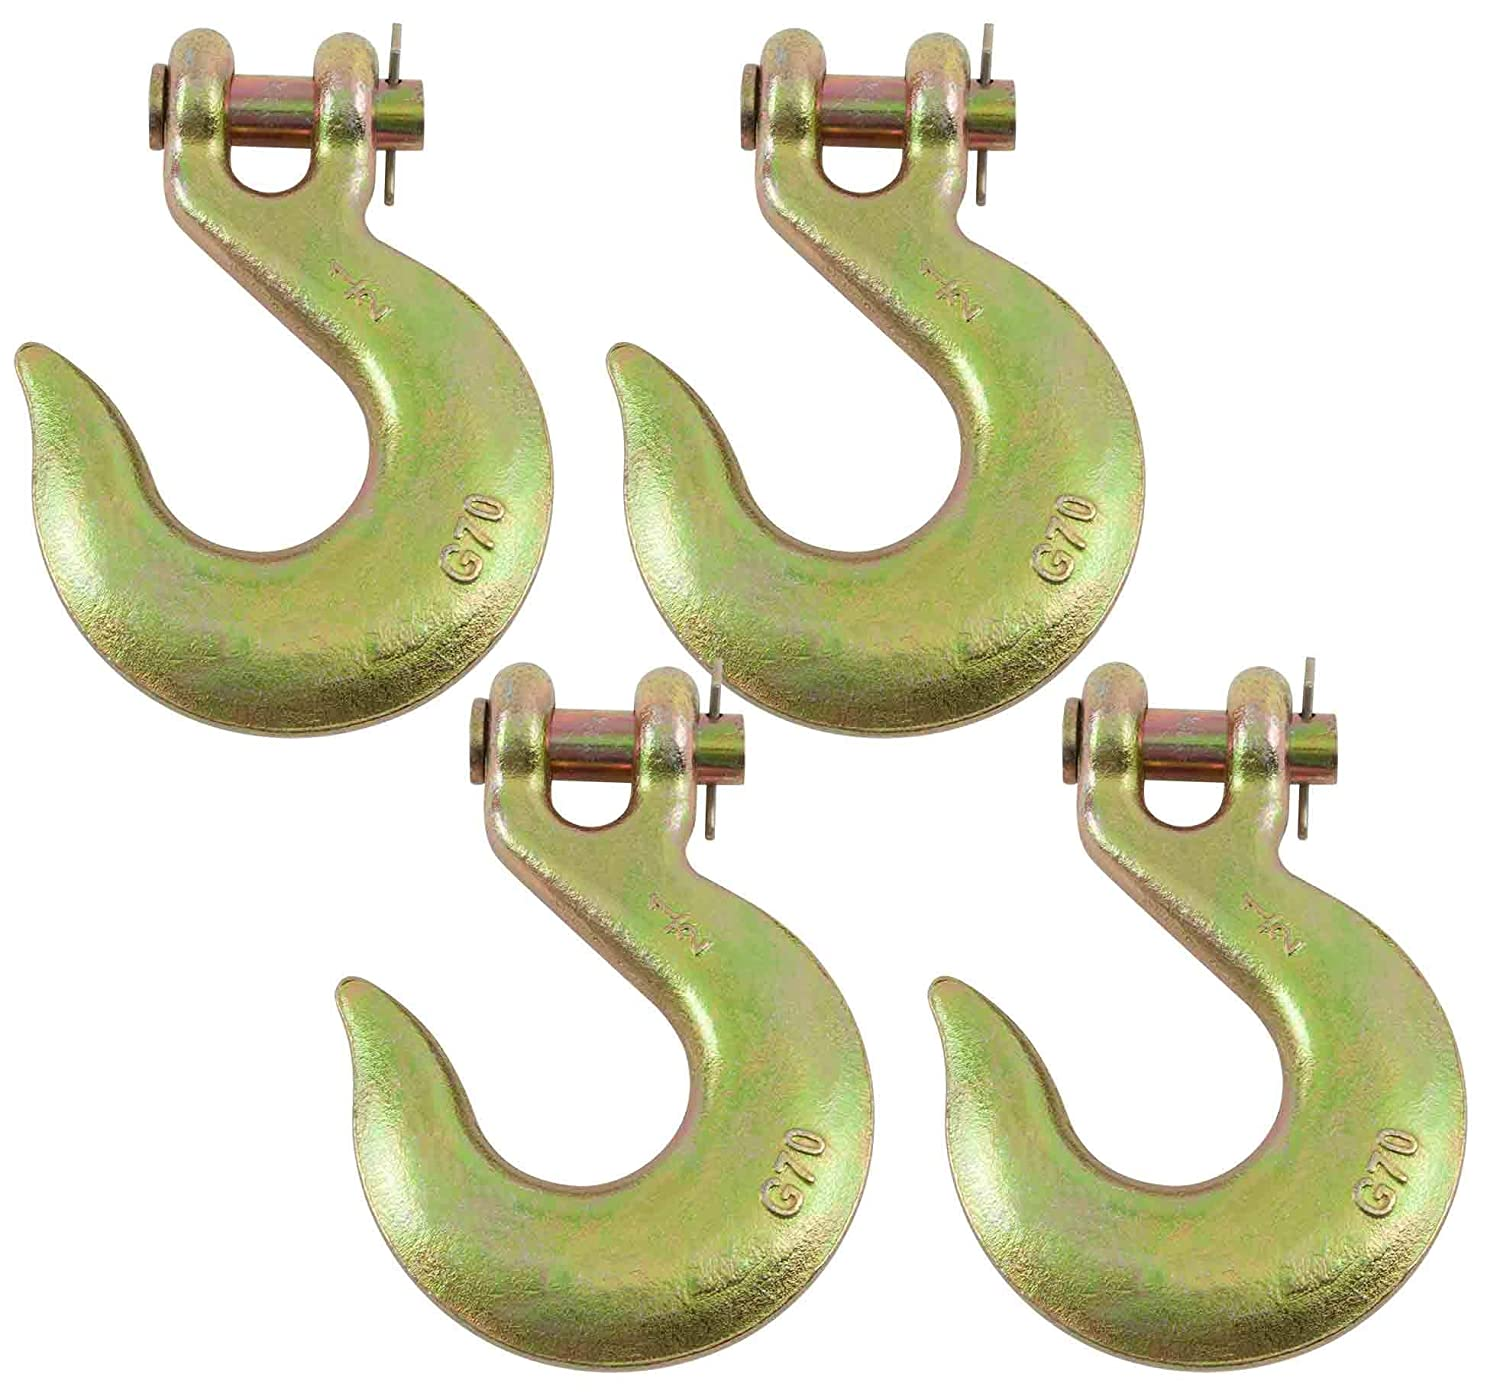 1//2 Clevis Slip Hook G70 Tow Chain Wrecker Truck Trailer Tie Down Mytee Products 4 Pack